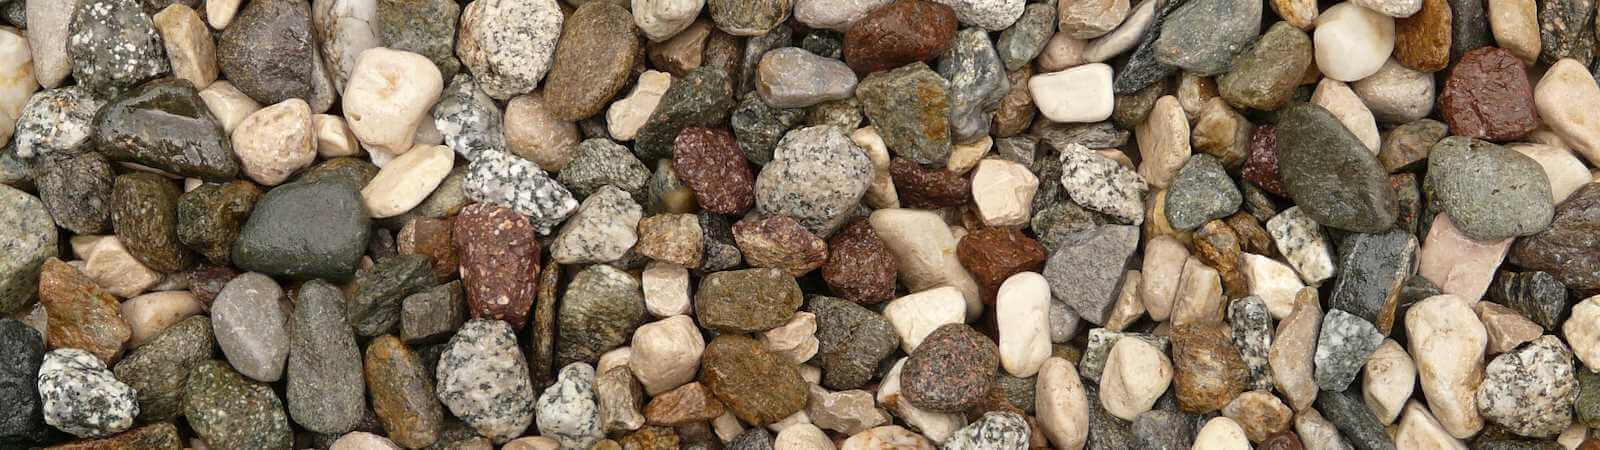 Do You Need Sand and Gravel Supplies?